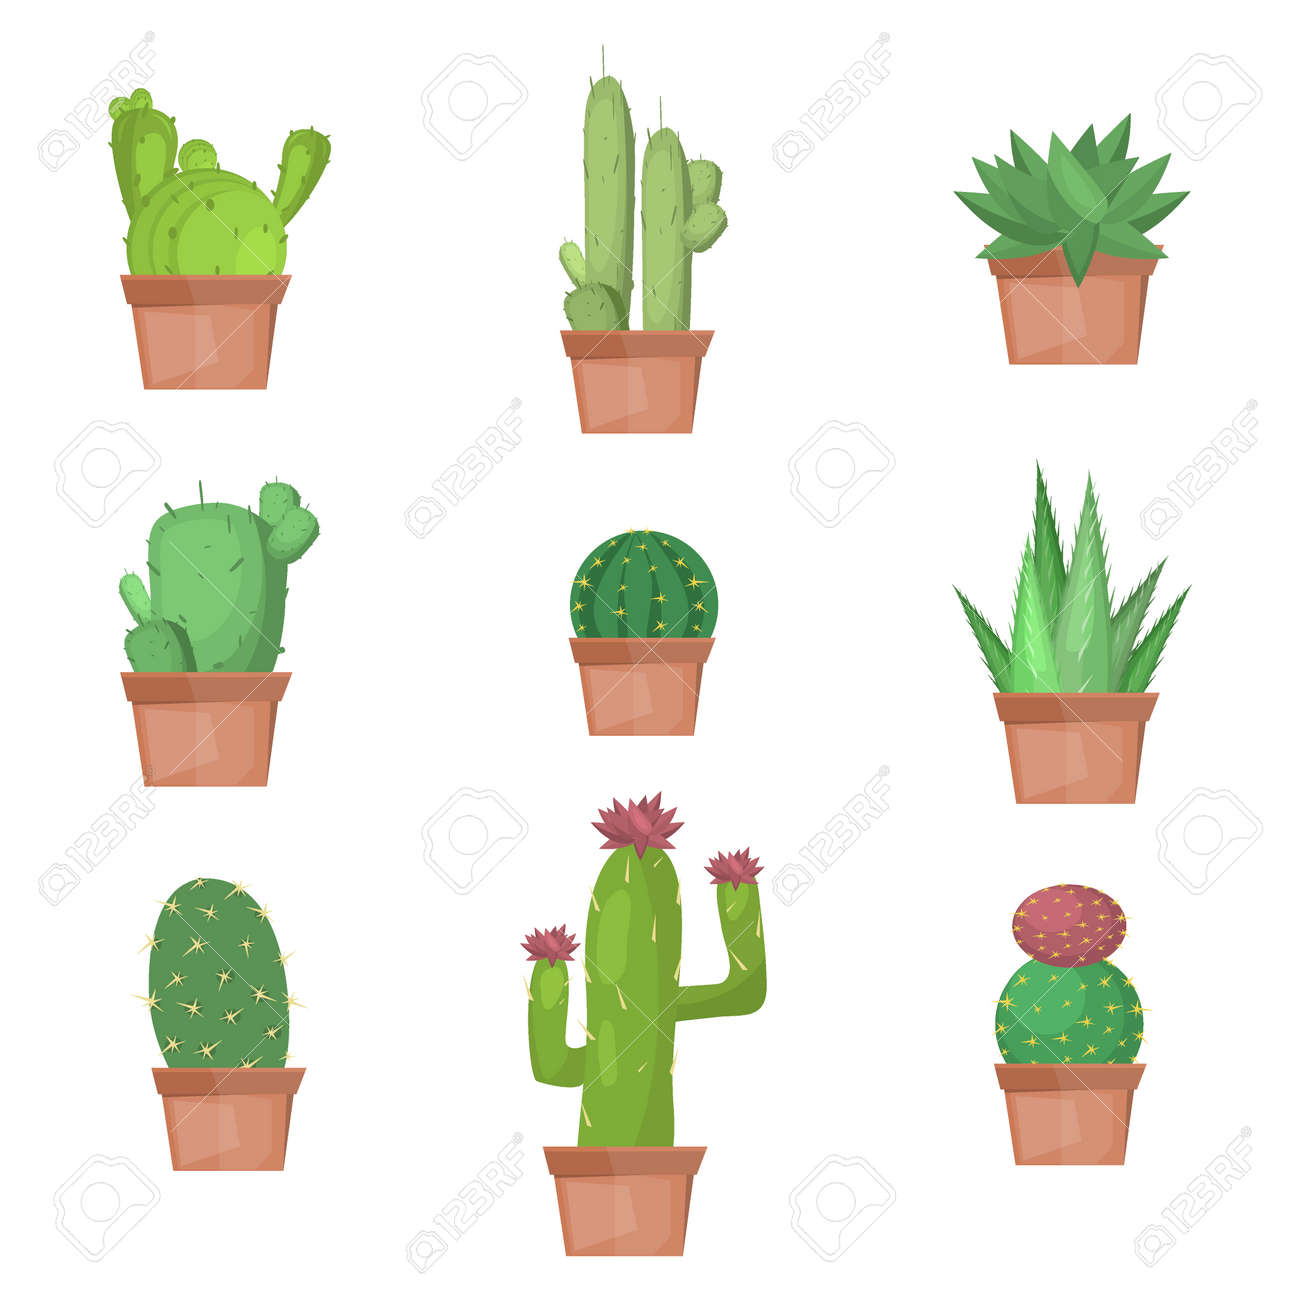 Cactus collection illustration. Cactus nature plant desert isolated mexico tropical art. Cactus nature plant succulent set. Tropical art cactus collection. Mexican cactus graphic botany cactus. - 56479213